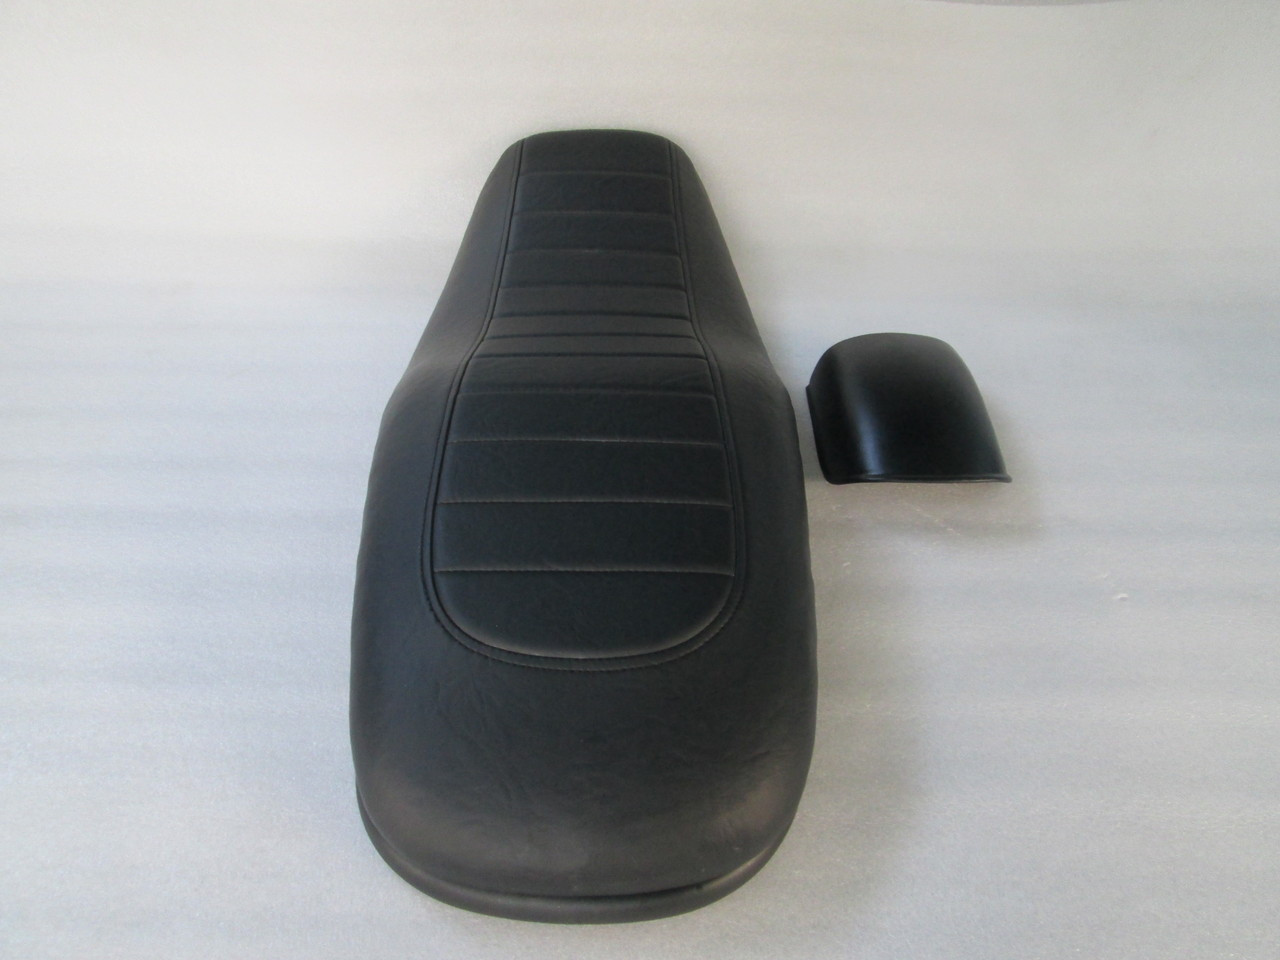 1979 - 1981 Honda Cafe Seat for CB750C or 1982 - 1983 CB750SC Nighthawk with modified pan end bar & free fender #4159